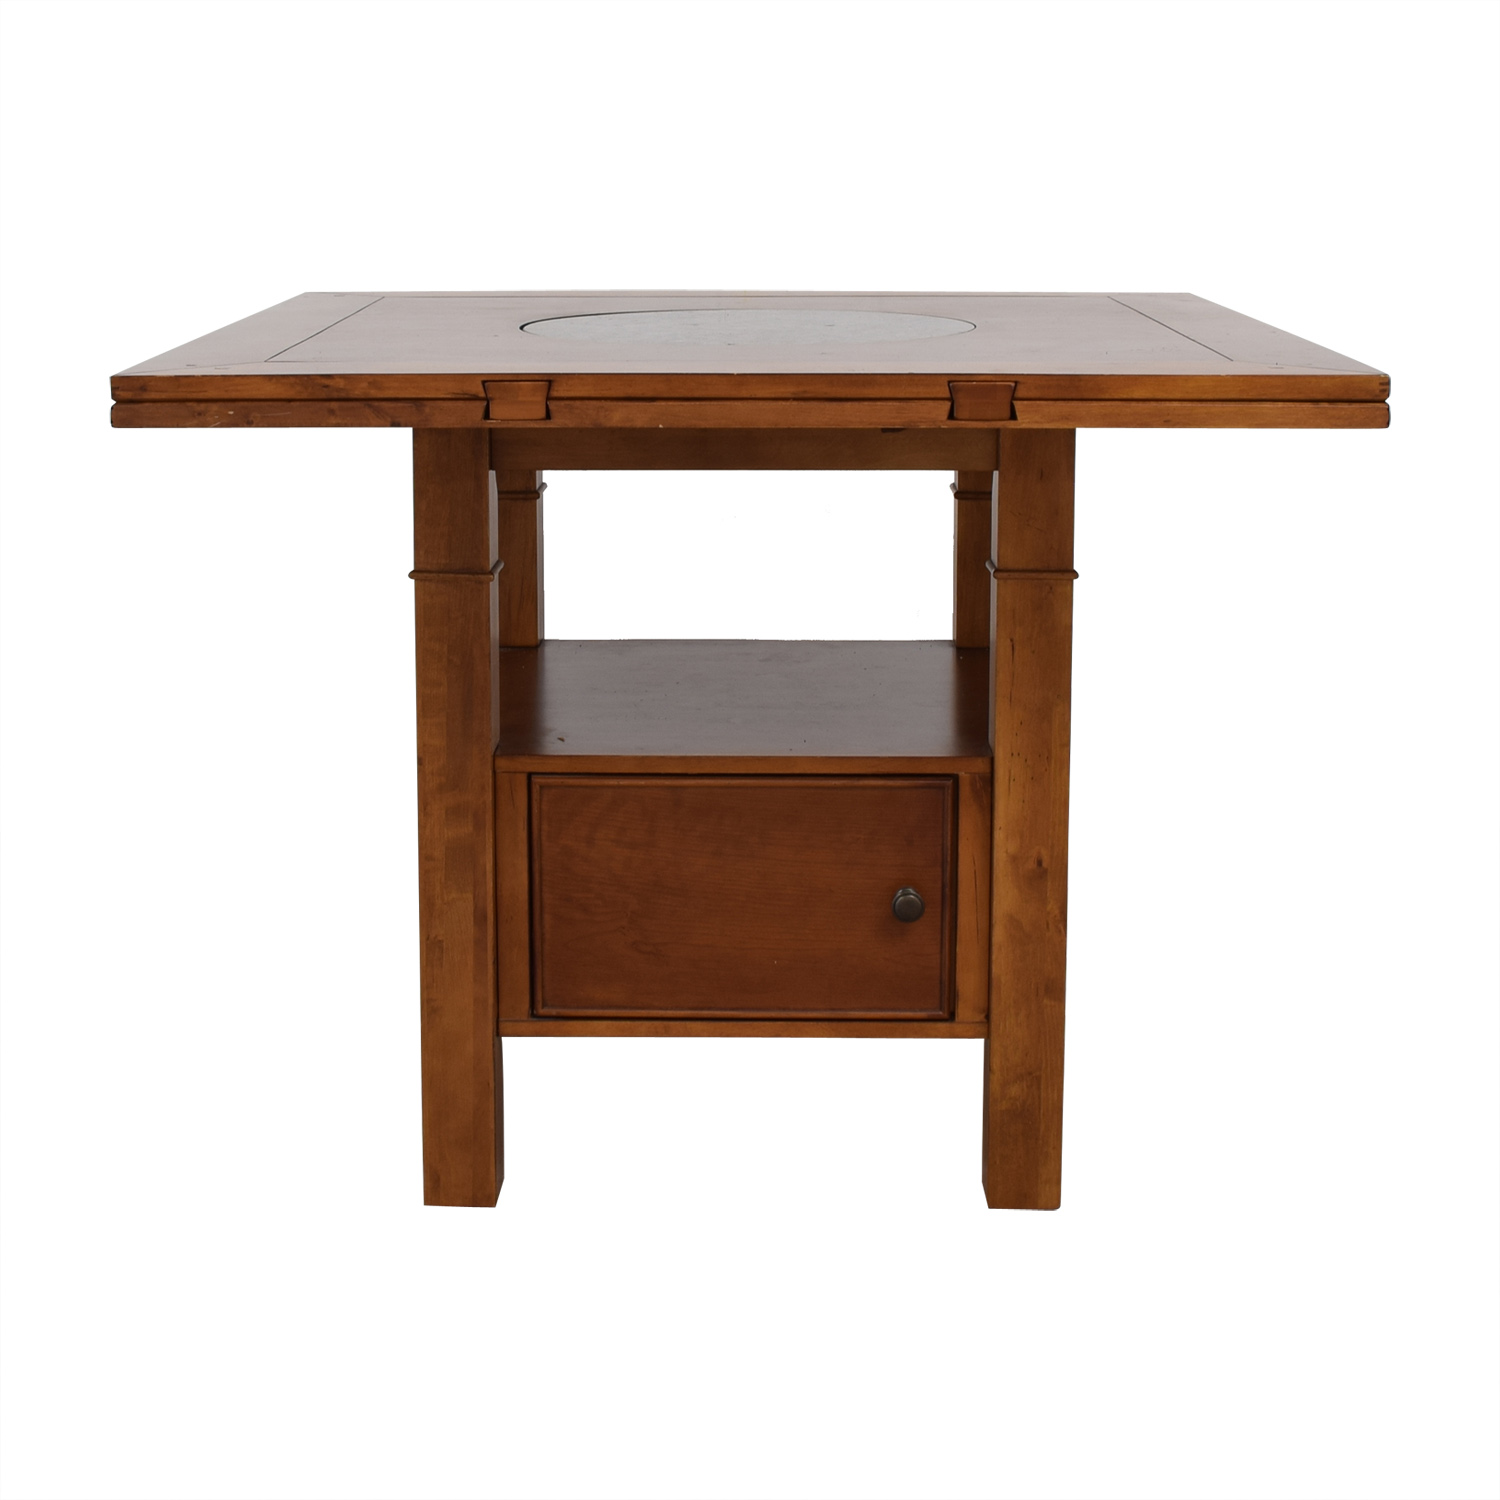 Haverty's Haverty's Counter Height Wood Dining Table with Folding Leaves